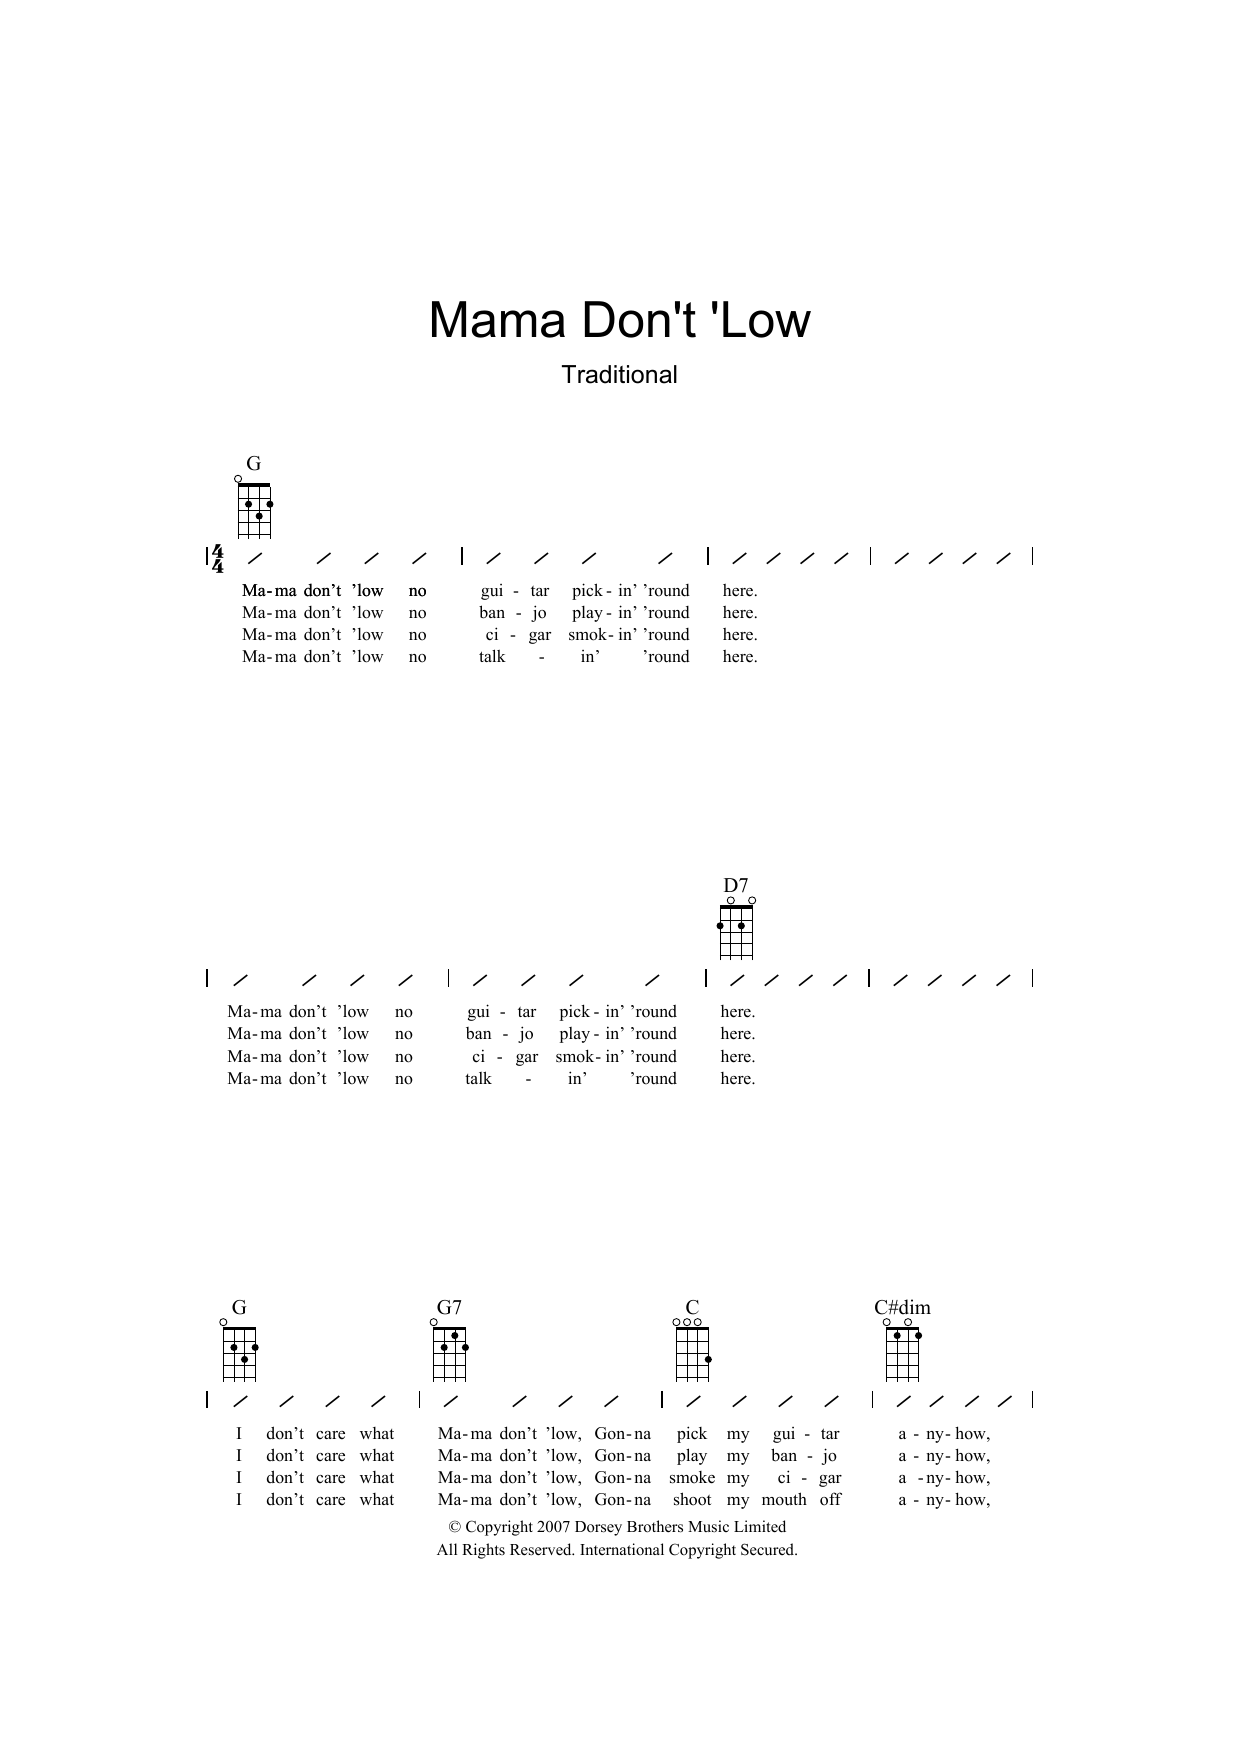 Traditional - Mama Don't 'low